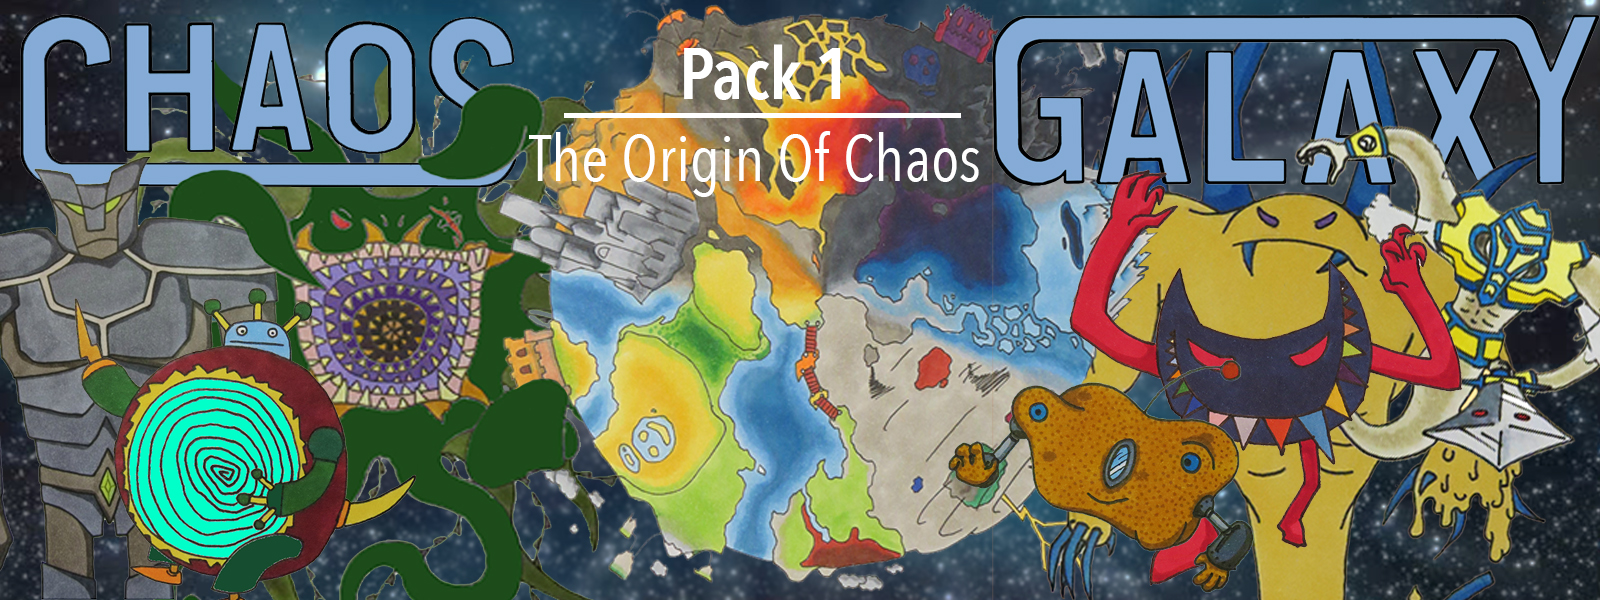 Chaos Galaxy TCG Set 1: The Origin of Chaos - Booster Pack